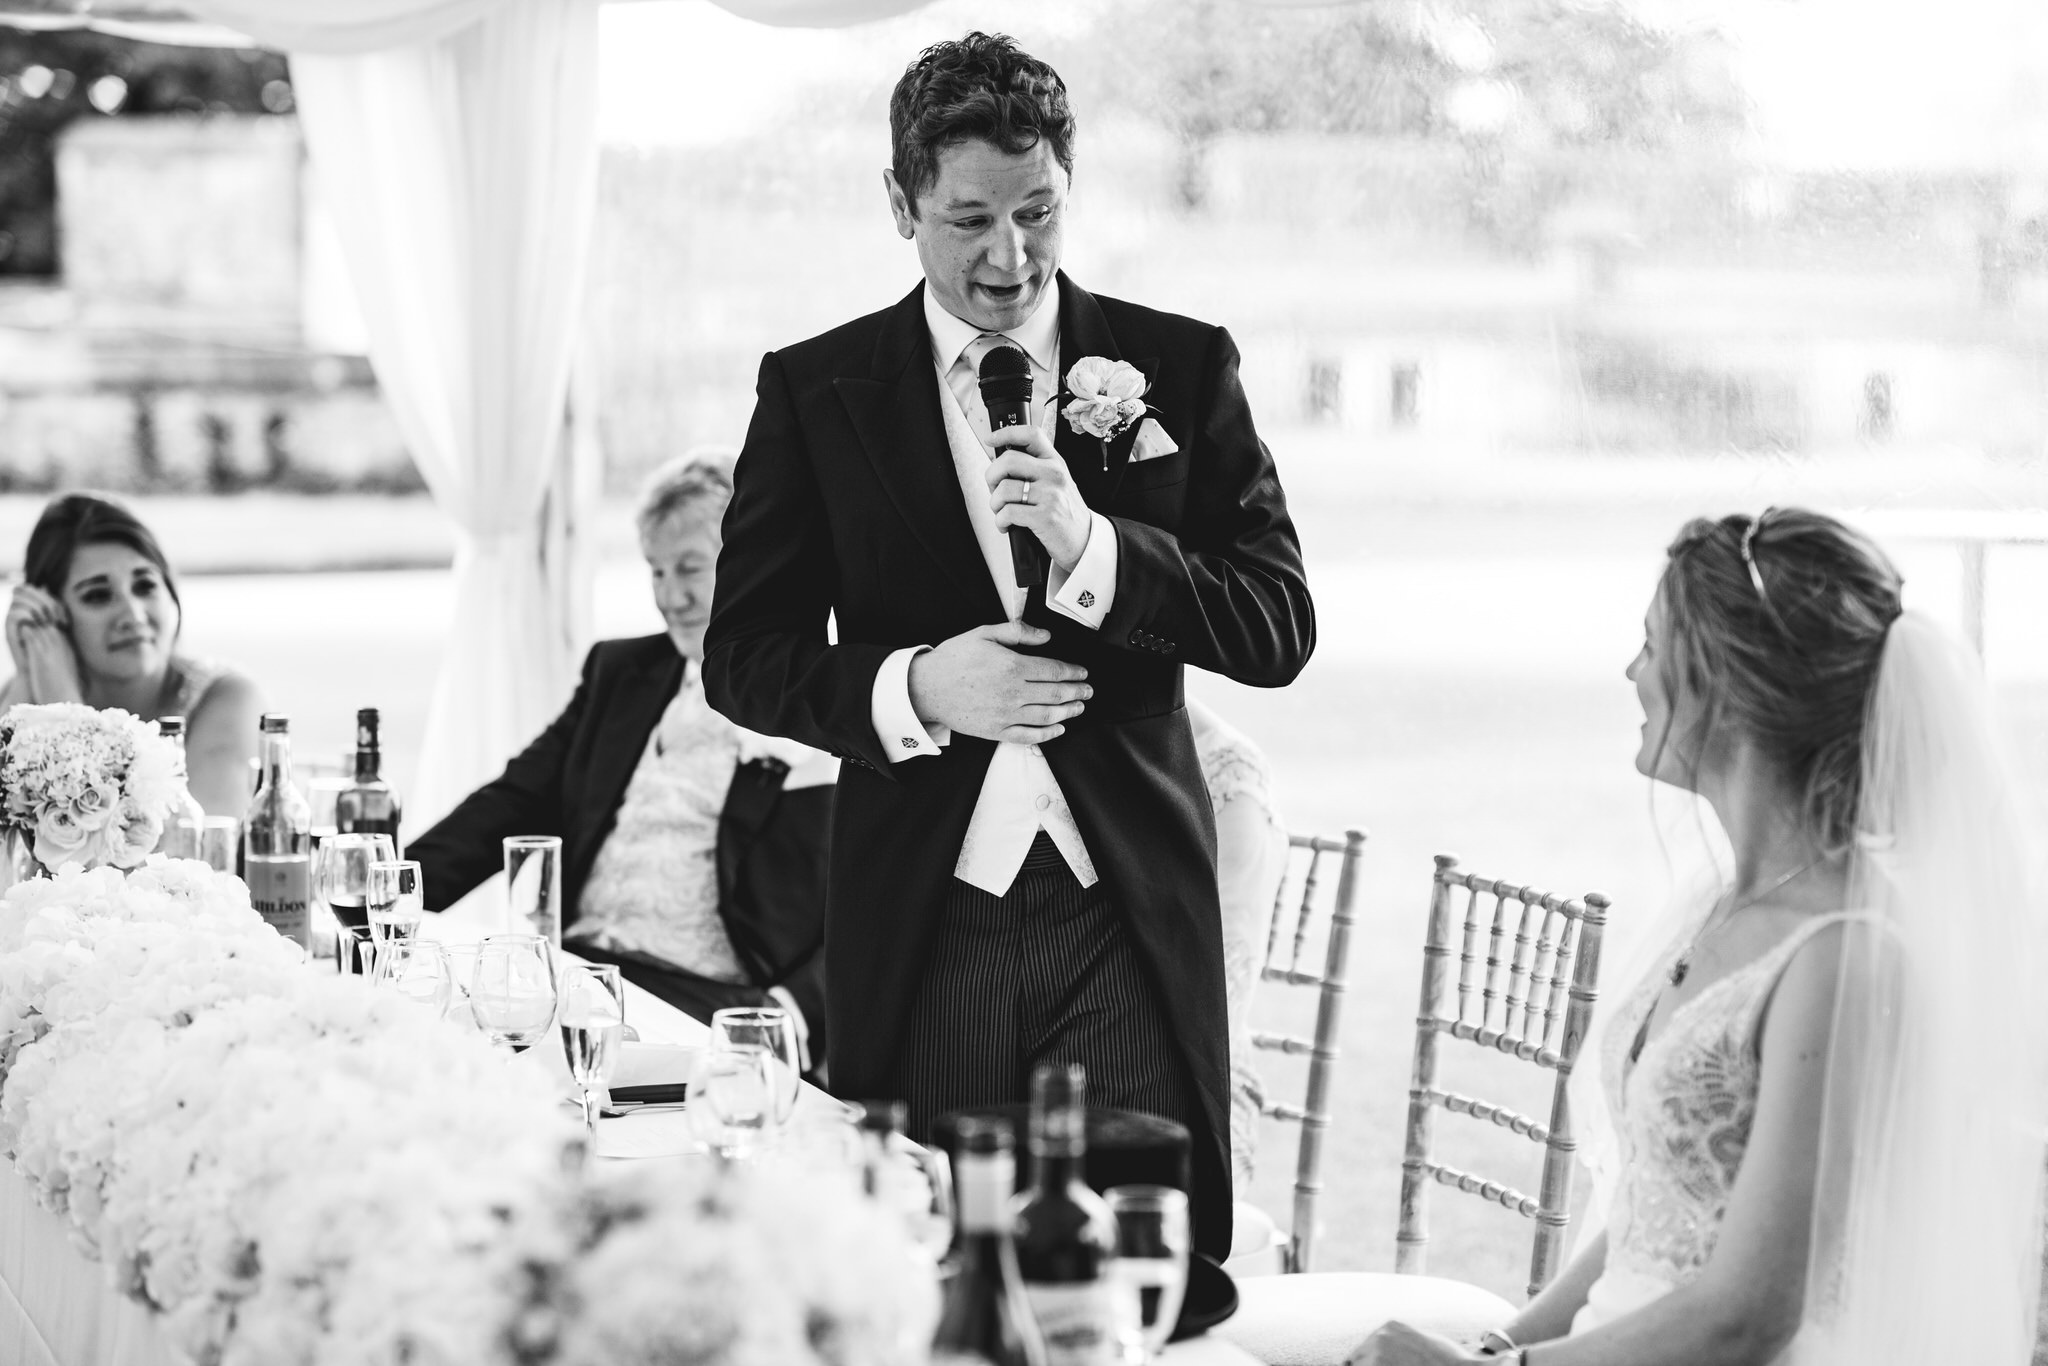 Dunster castle wedding speeches